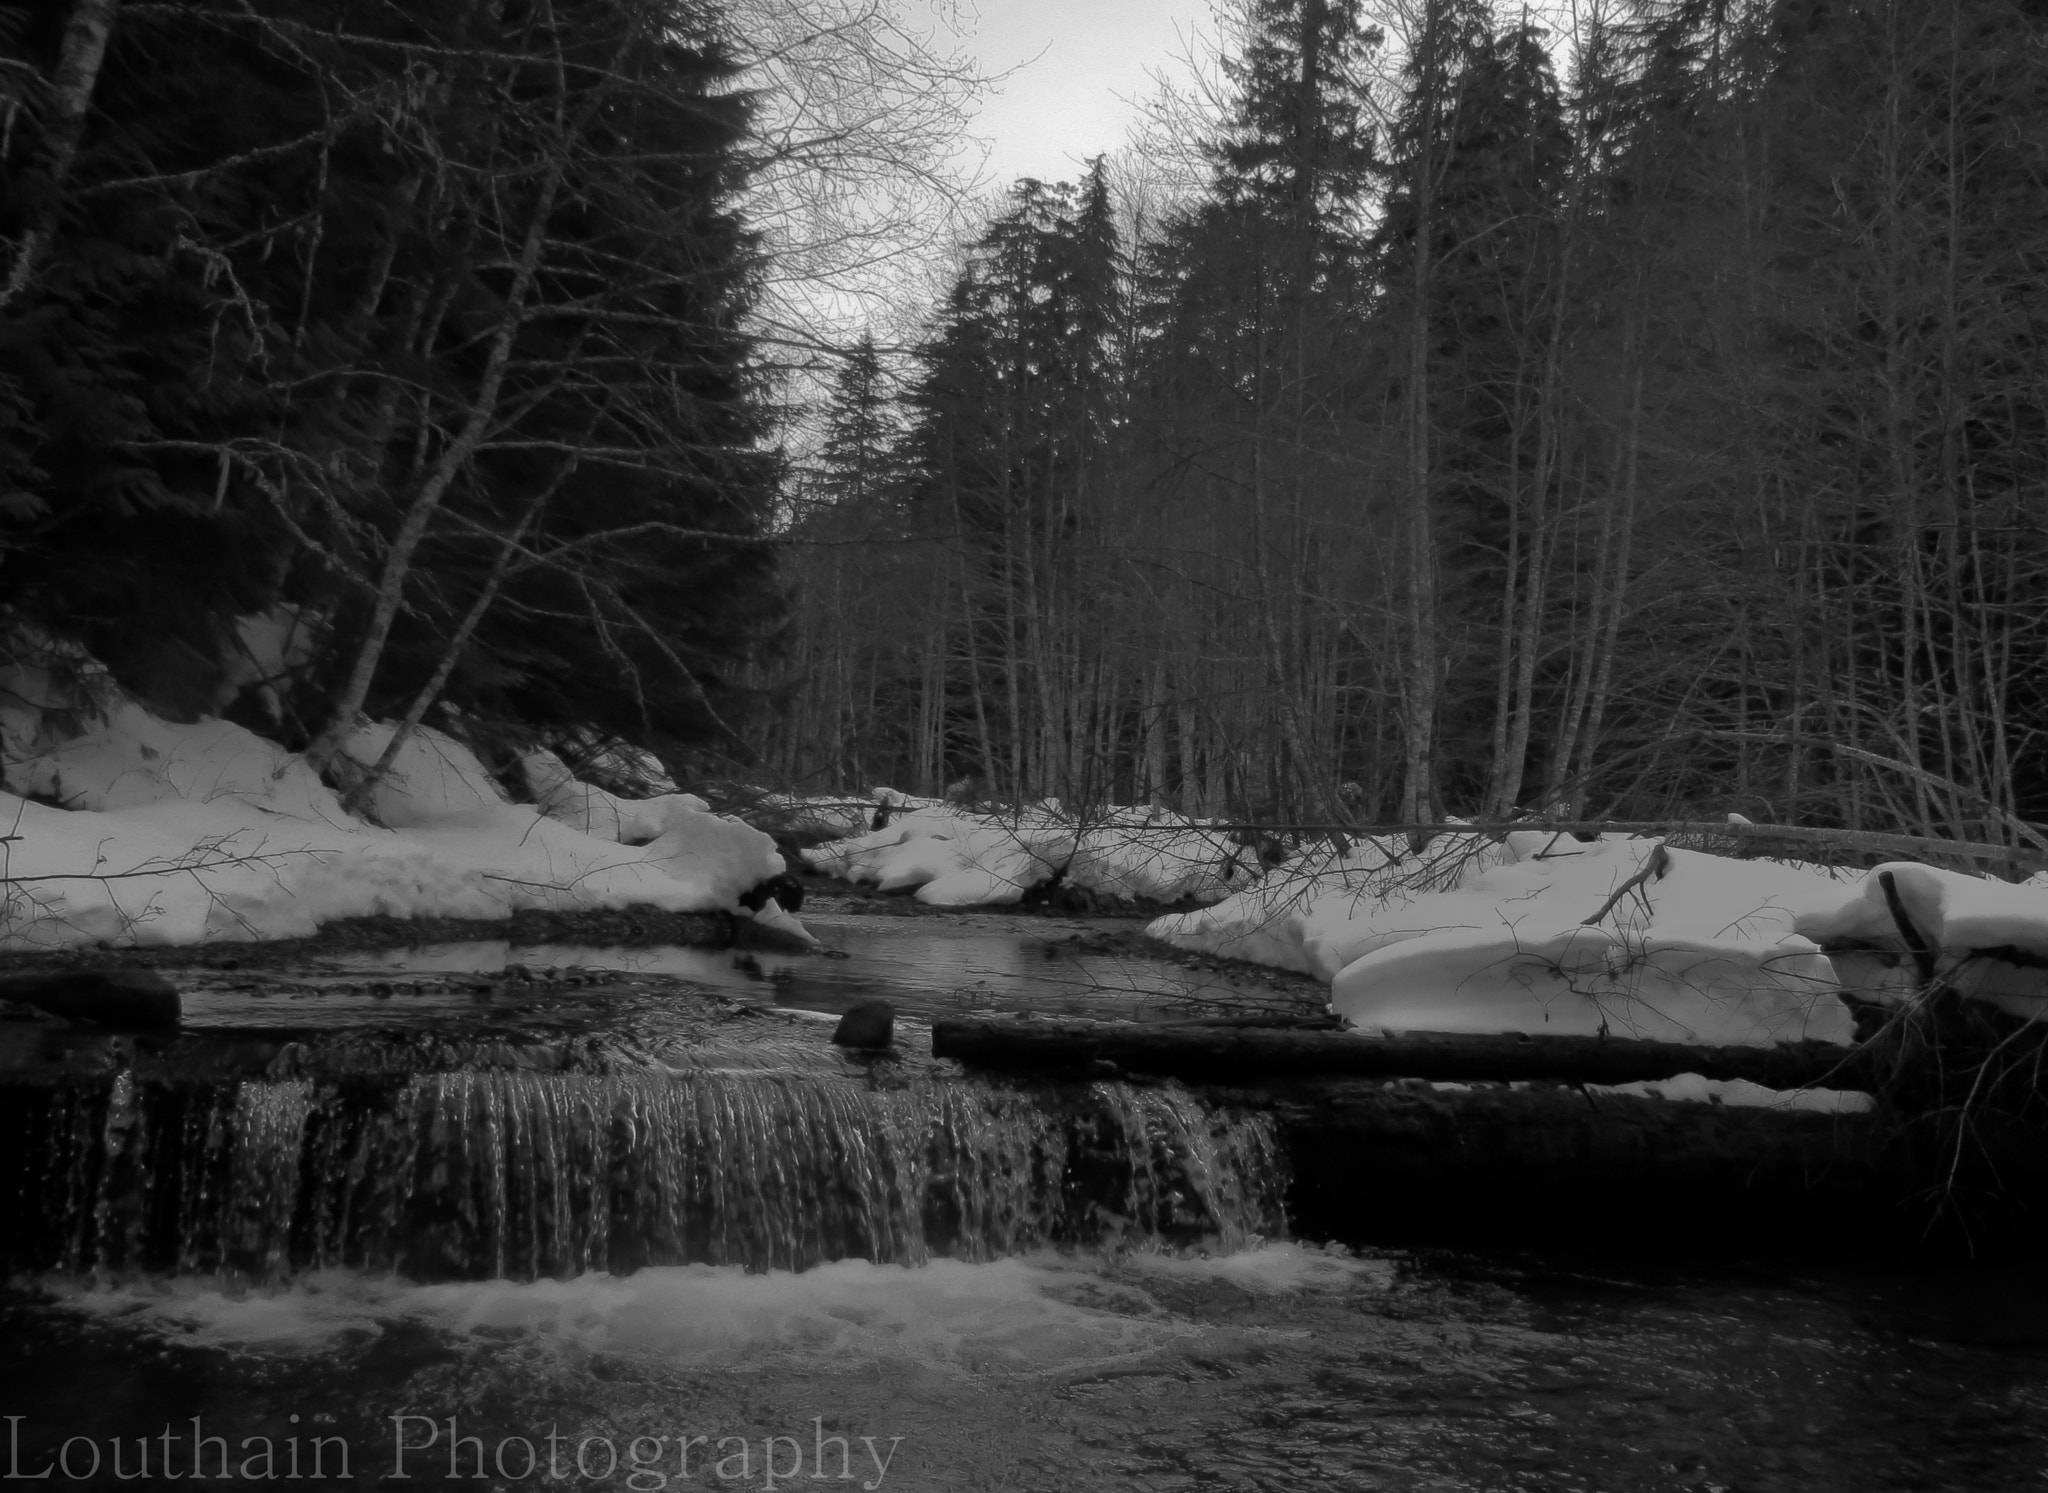 Photograph Winter's Icy Creek by Eric Louthain on 500px